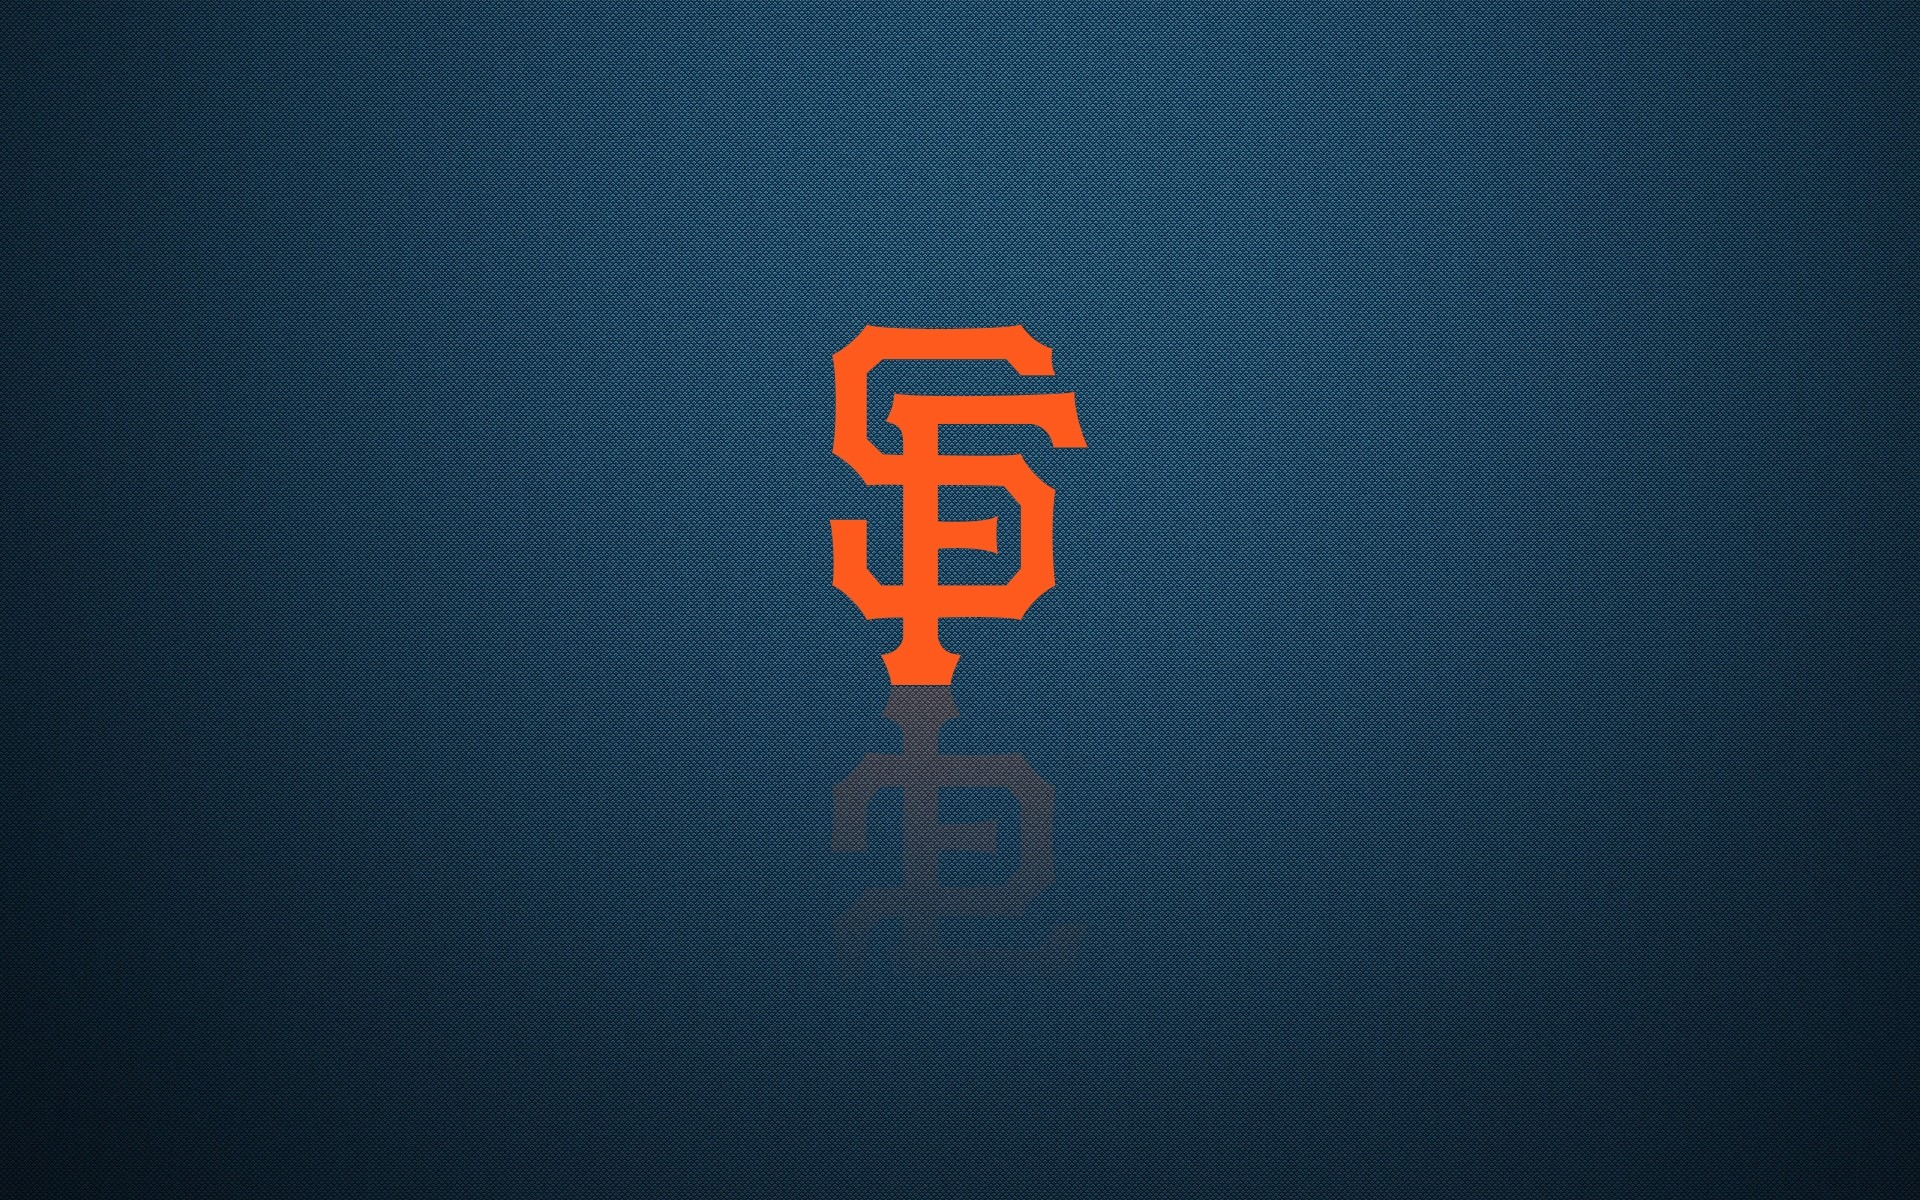 Gallery of San Francisco Giants Wallpapers